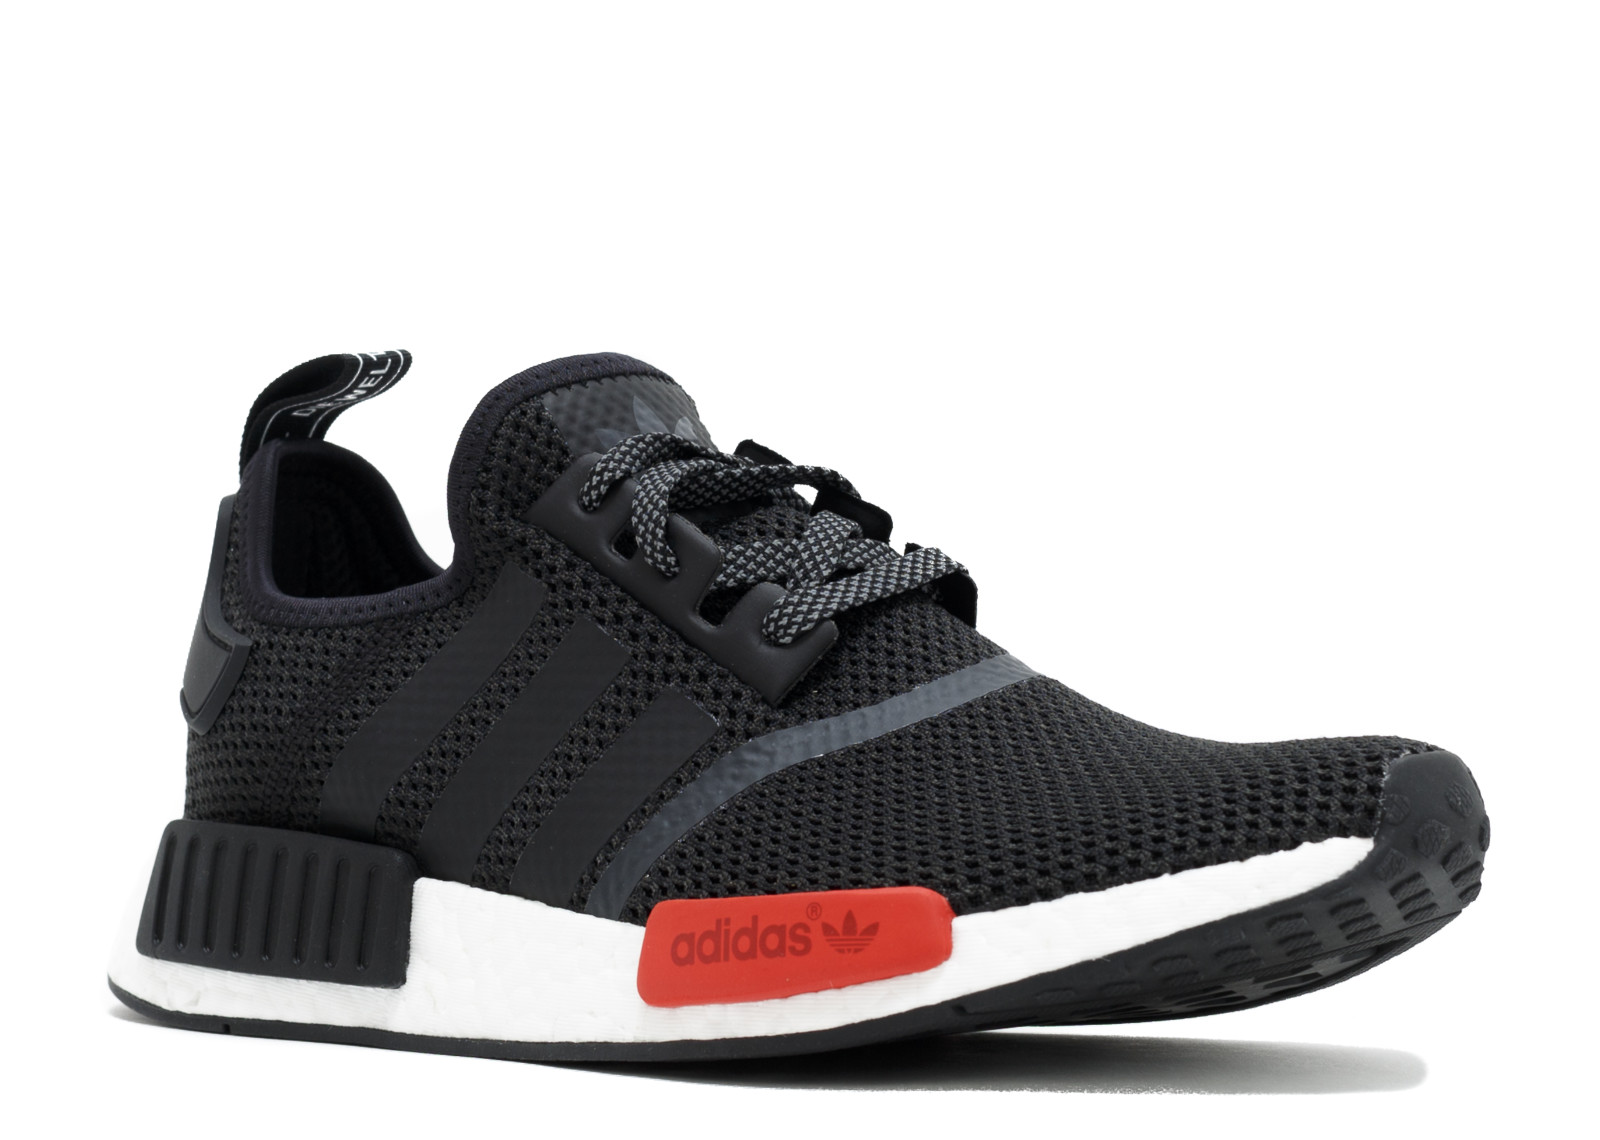 42375eef4fc32 Adidas NMD R1 Footlocker Black Red - 1